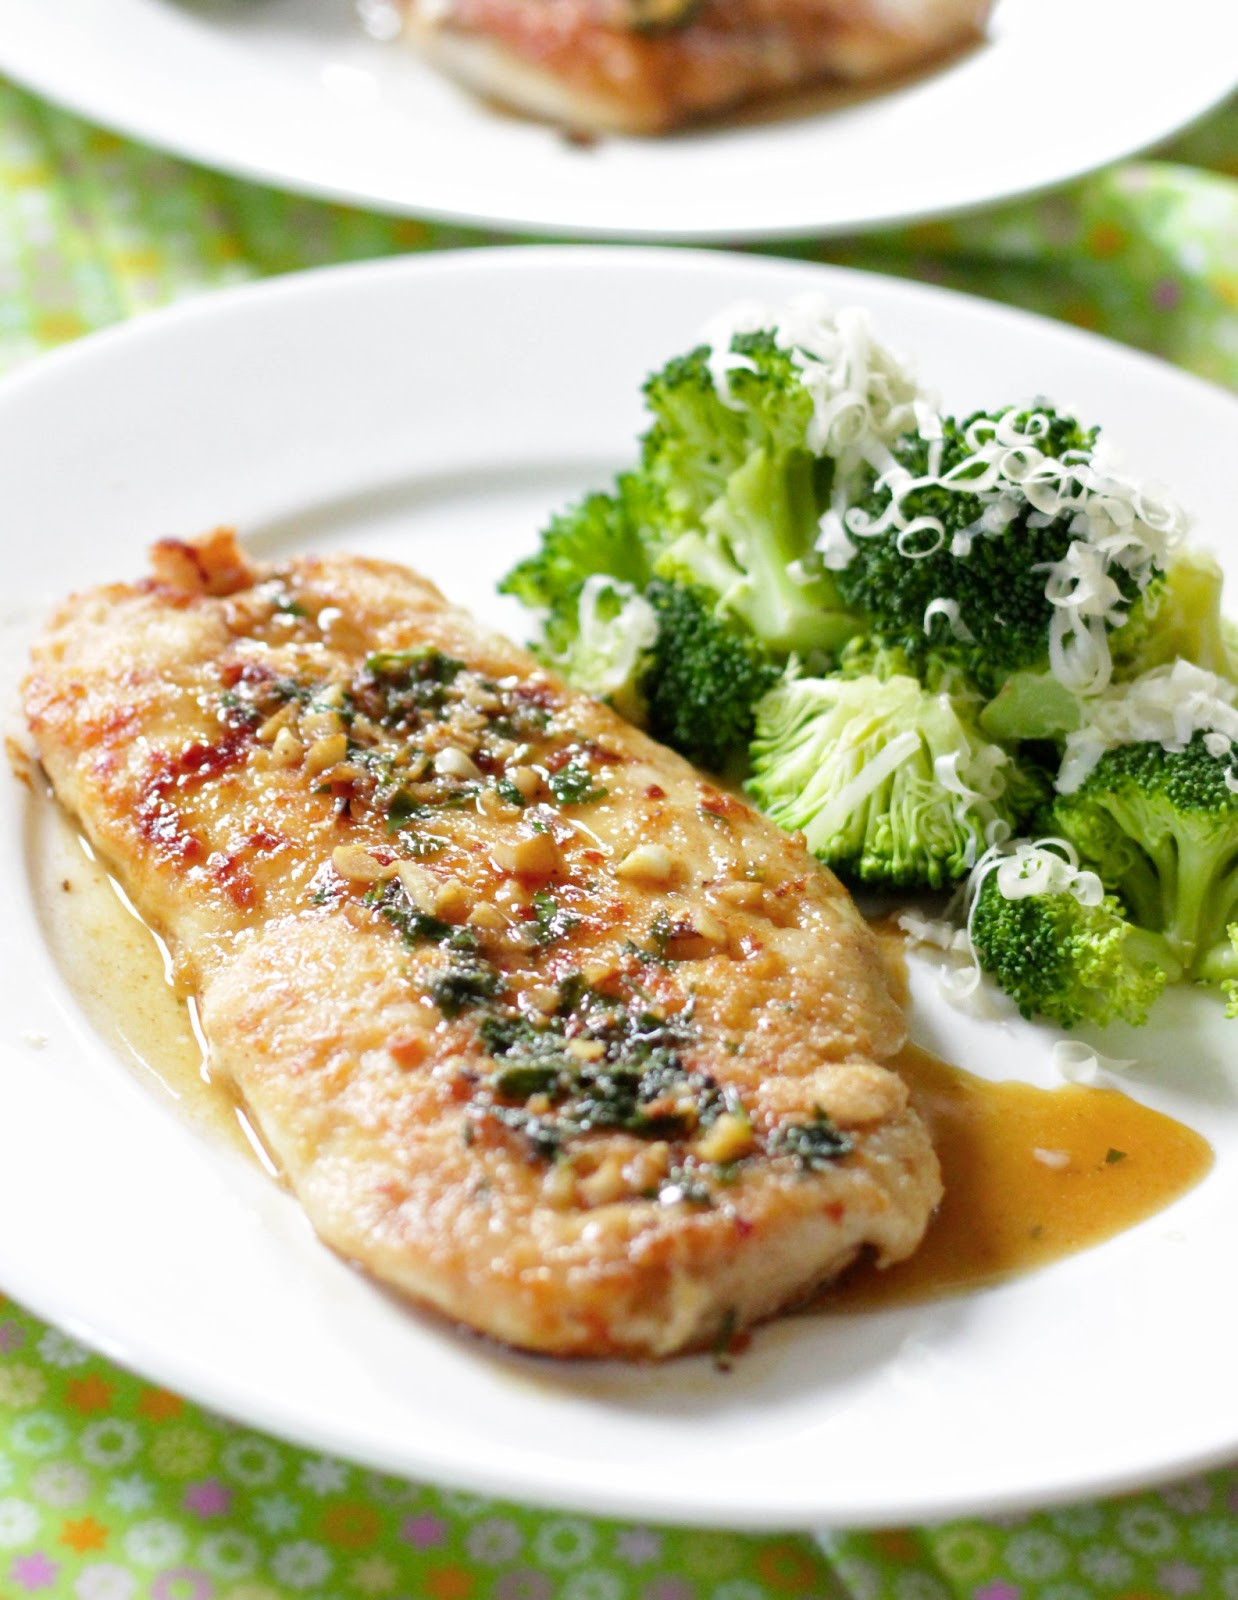 Healthy Baked Chicken Cutlets  Parsley and garlic chicken cutlets with broccoli